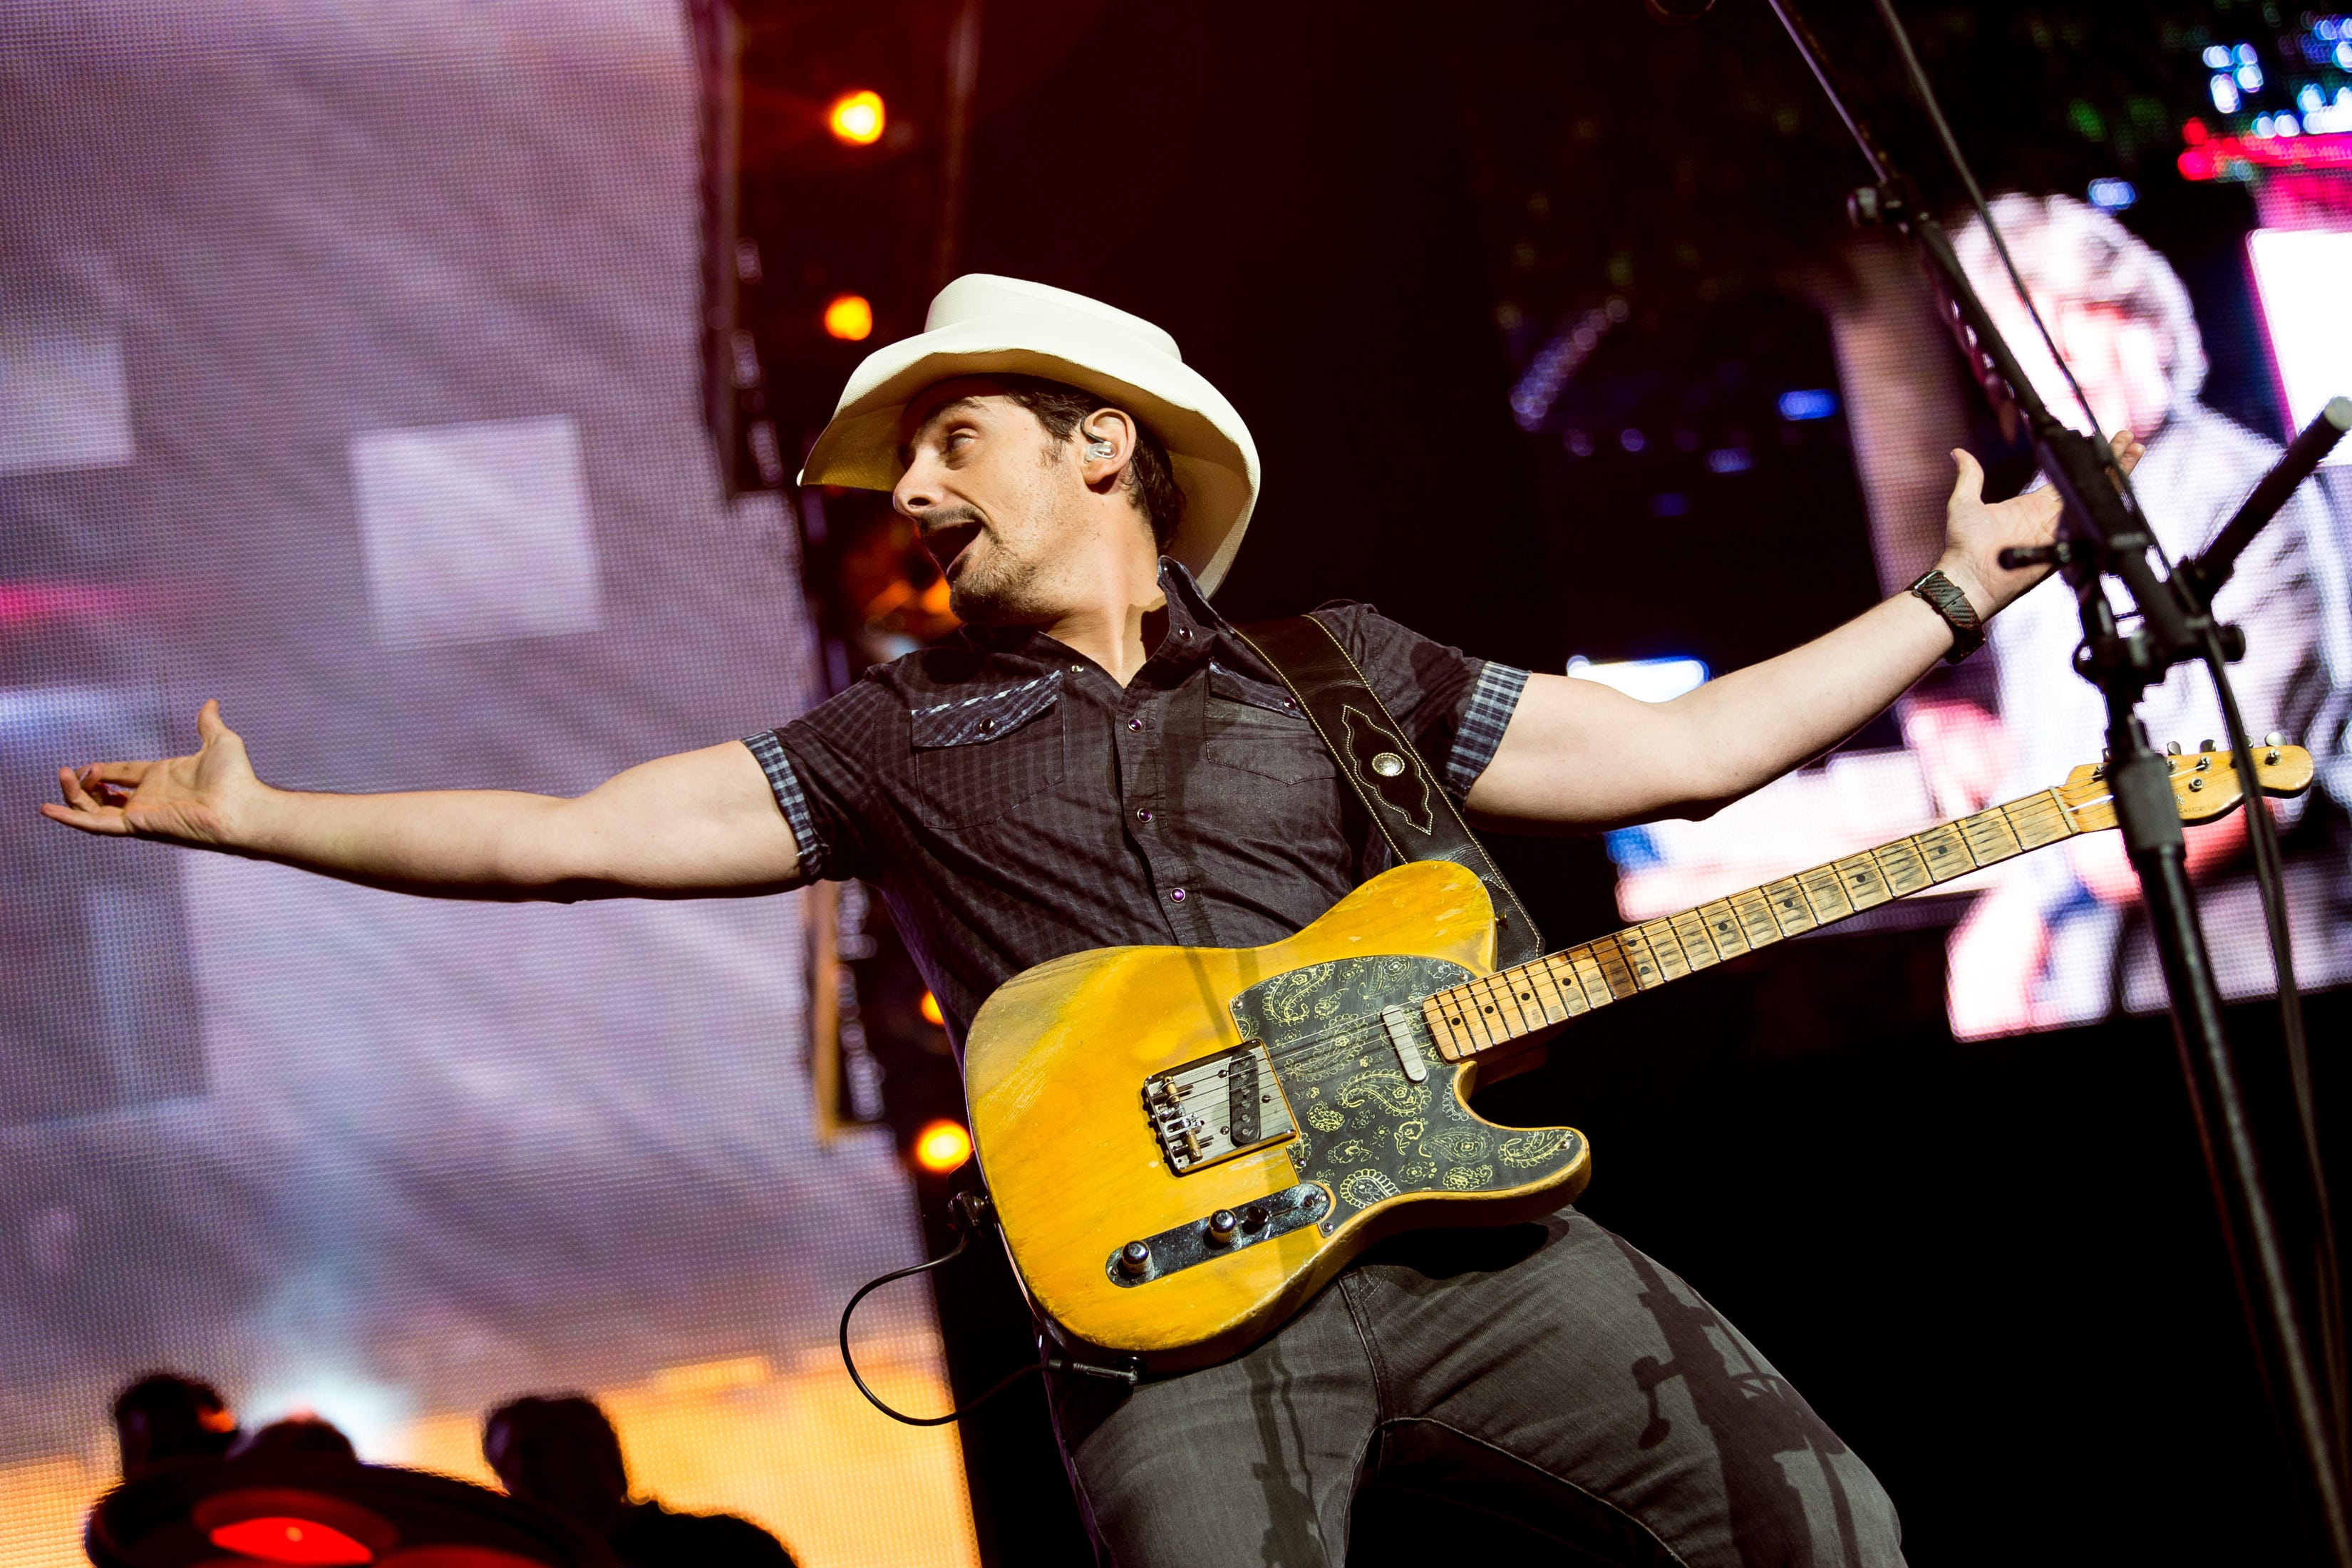 There s no leap of faith : Why Brad Paisley is going to bat for COVID-19 vaccines